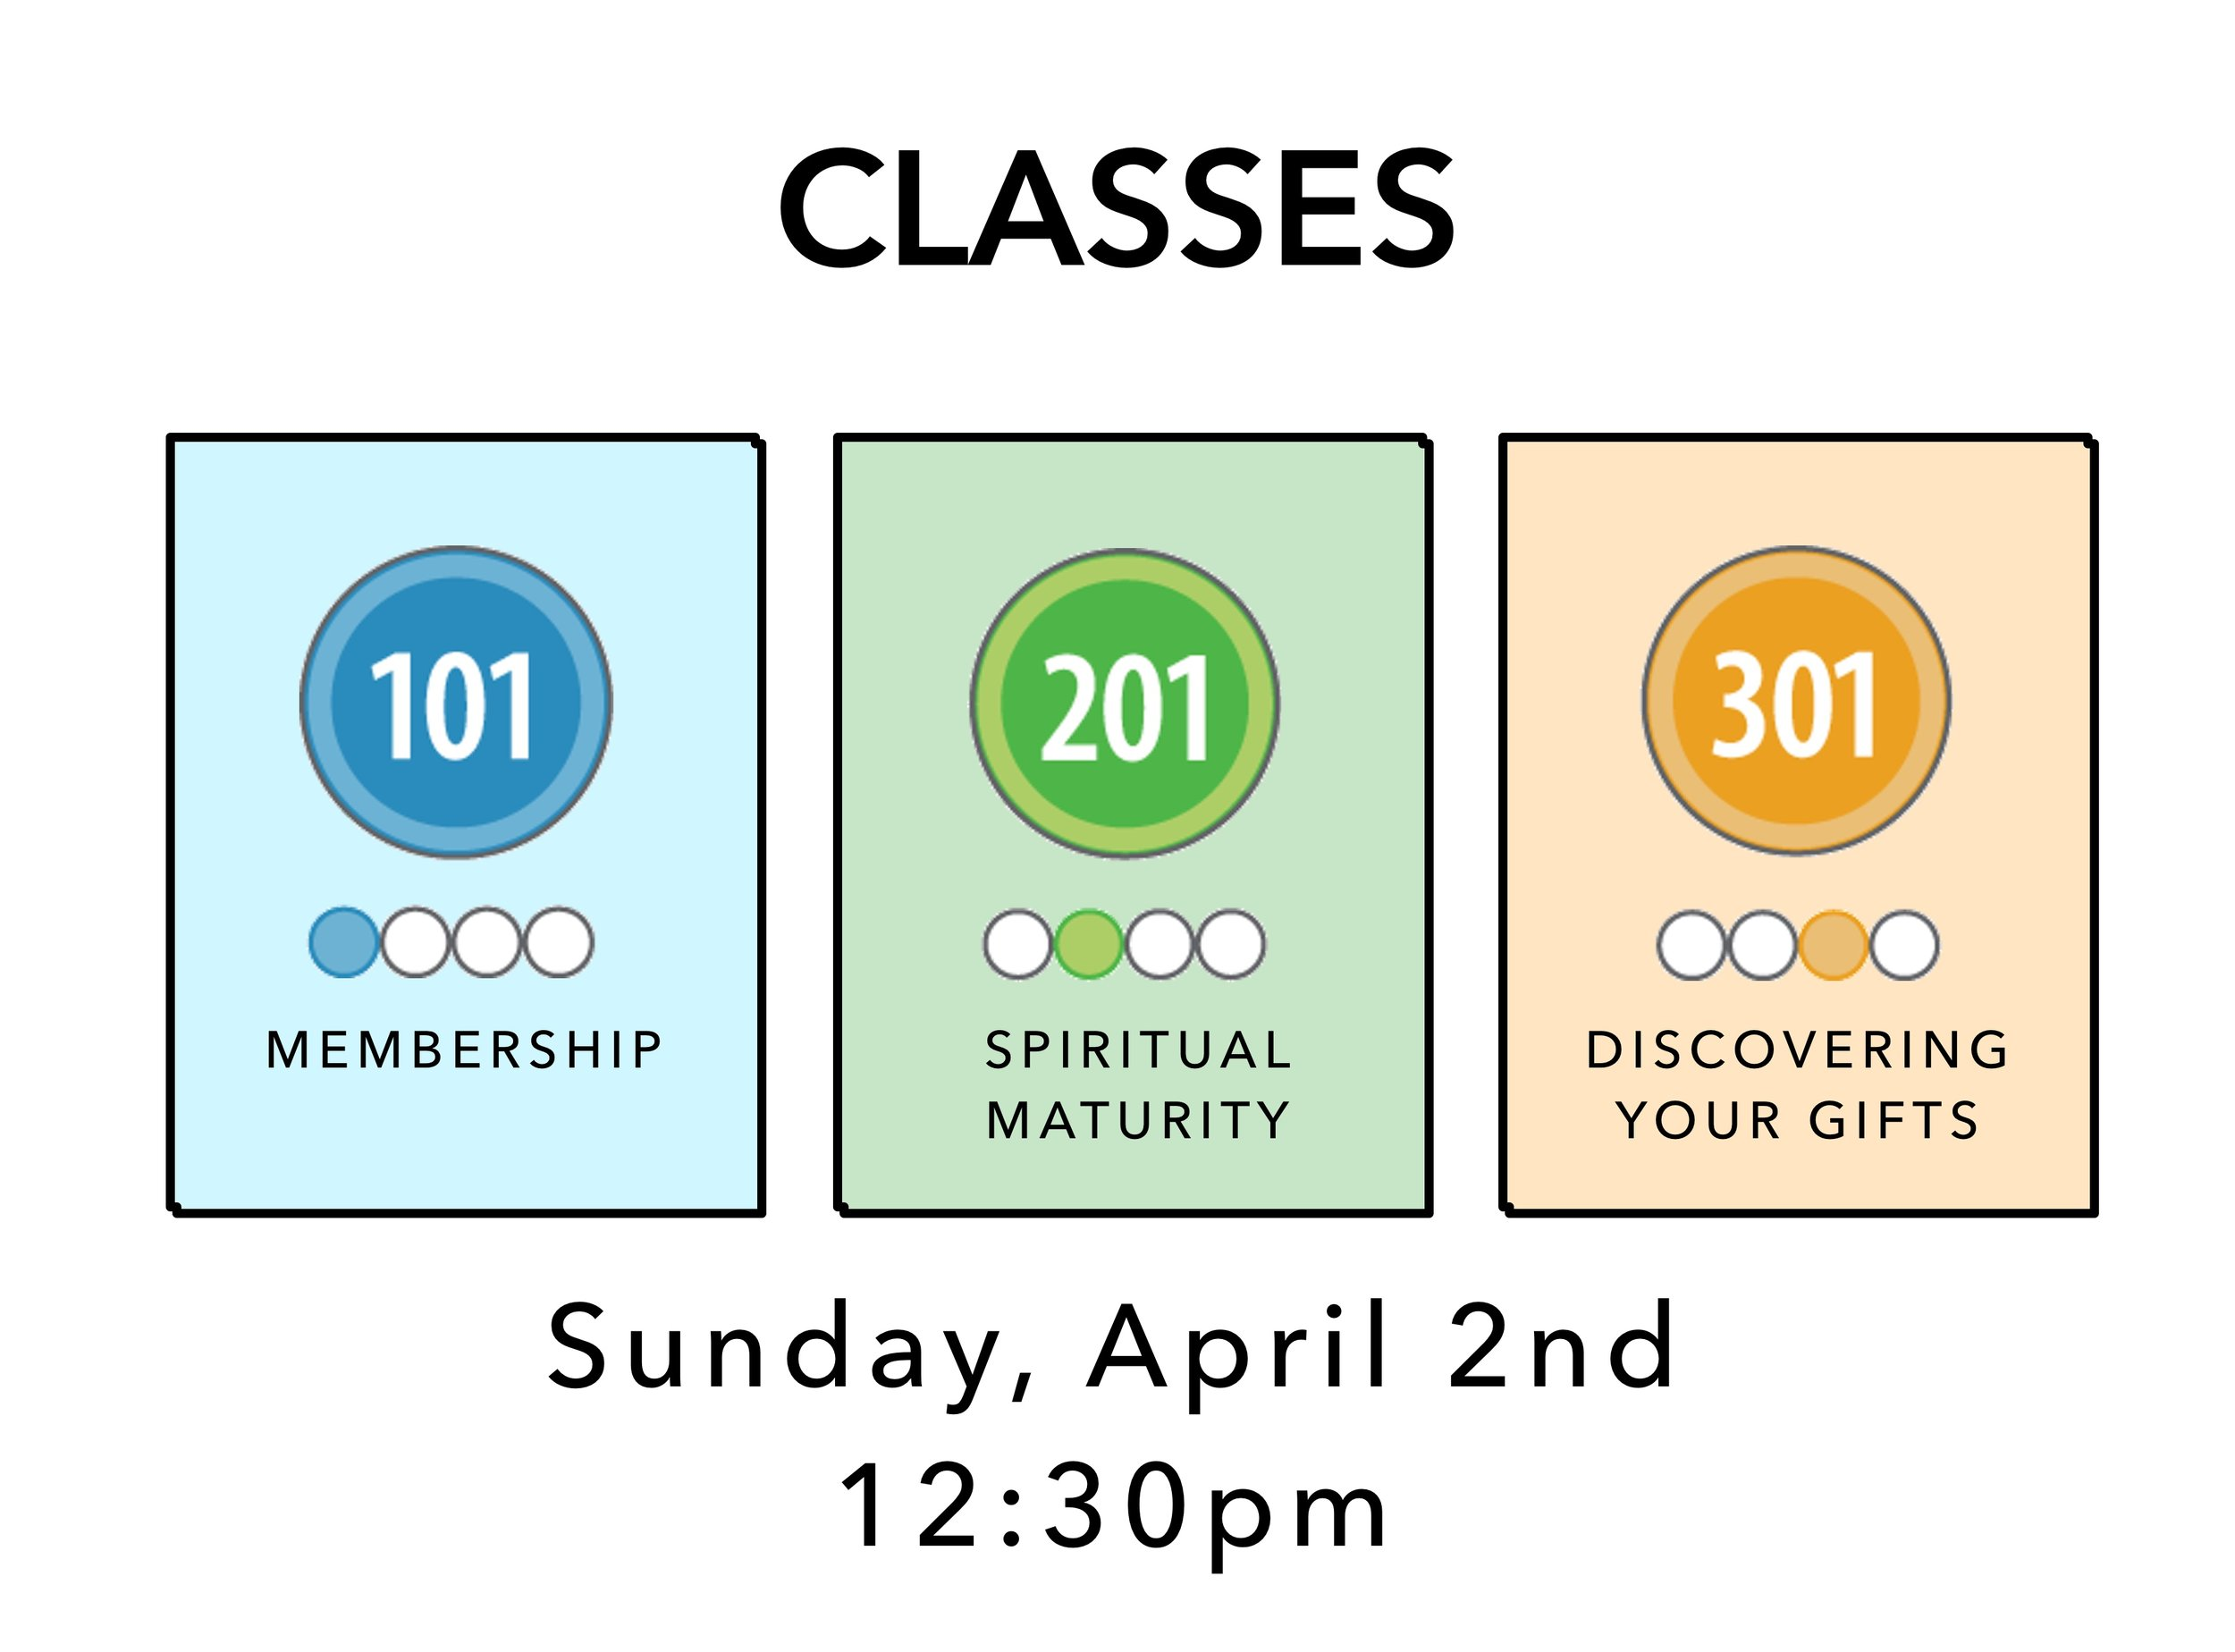 Want to know more about the church and maybe become a member (Class 101), or learn the tools to grow in your daily walk with Christ (CLASS 201), or discover your gifts (CLASS 301)?  Then sign up for a CLASS! Just send an email to Tina at  info@brookridge.org . CLASSes must be taken in order, so if this is your first time taking a CLASS, you'll start with CLASS 101.